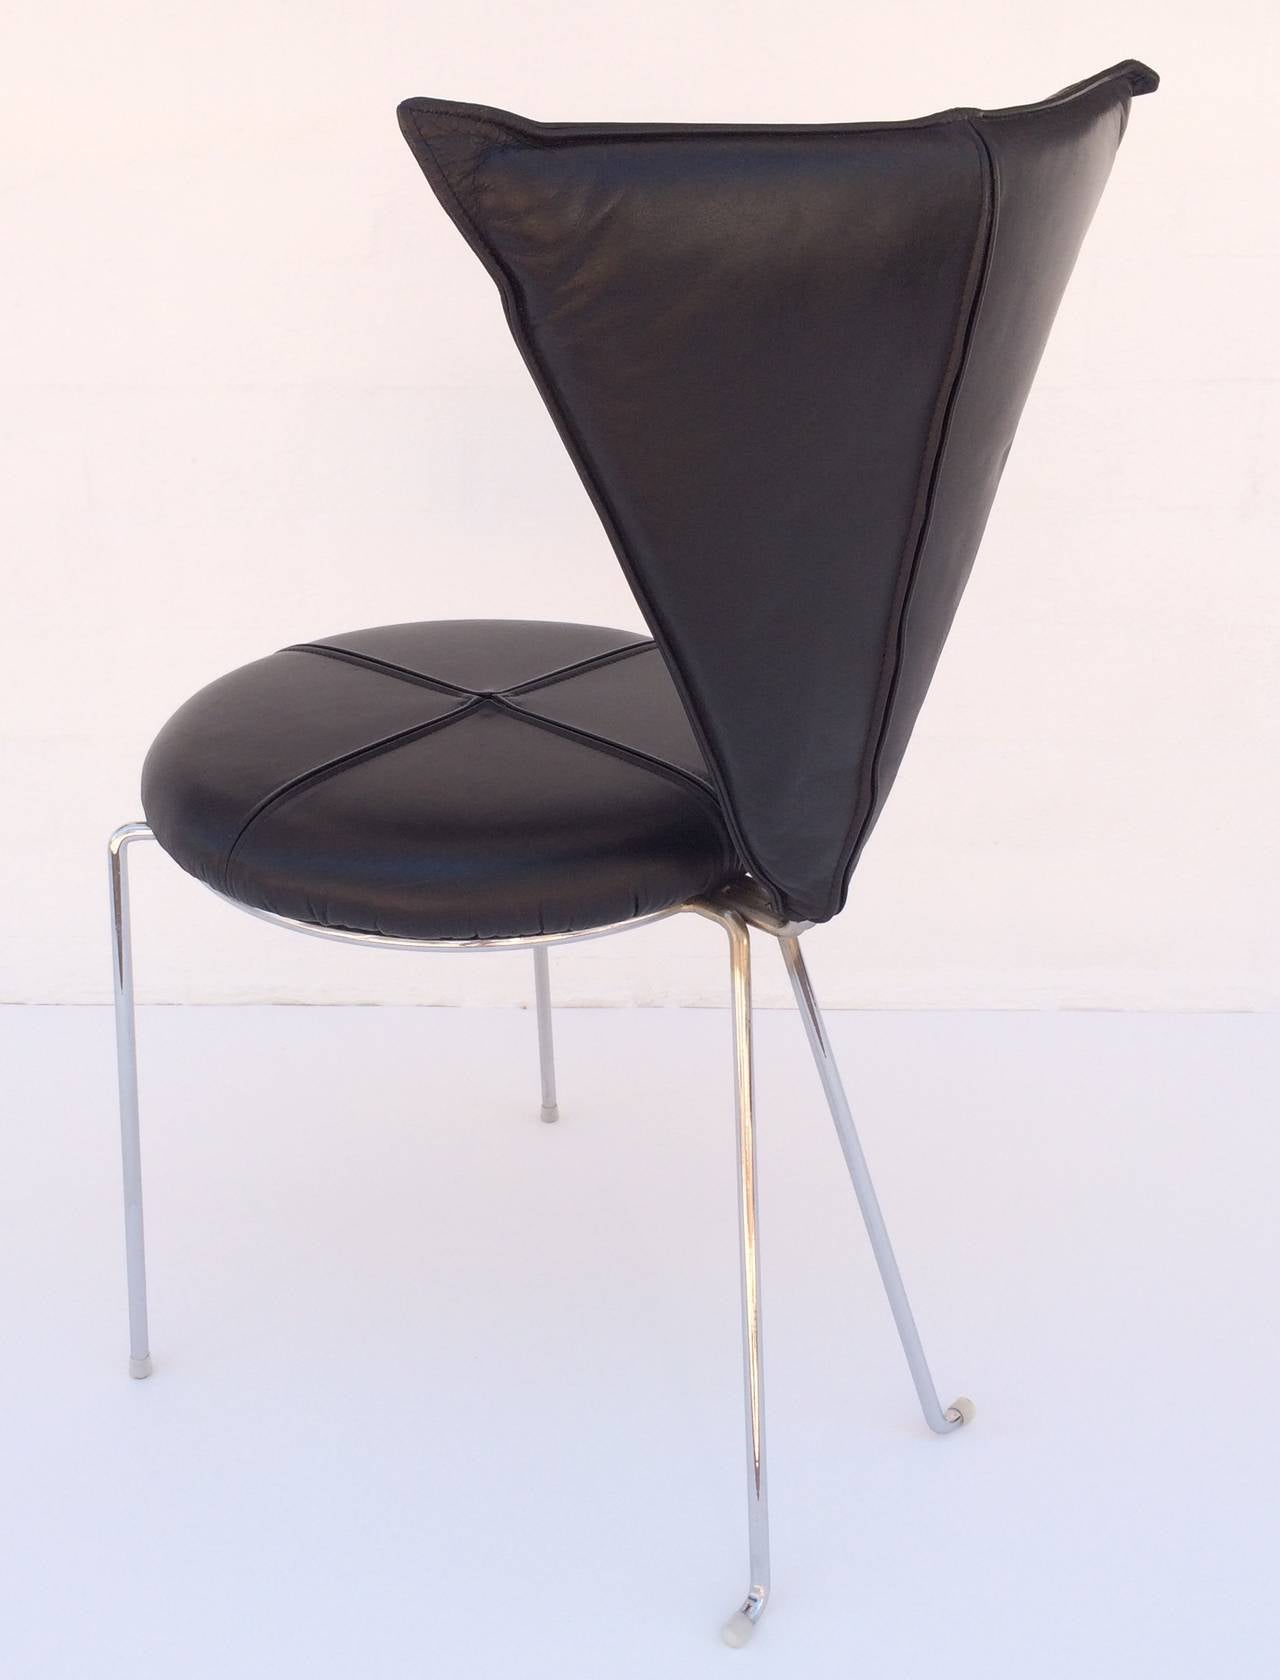 Late 20th Century Rare Set of Four Black Leather and Chrome Chairs by Helmut Lubke & Co For Sale